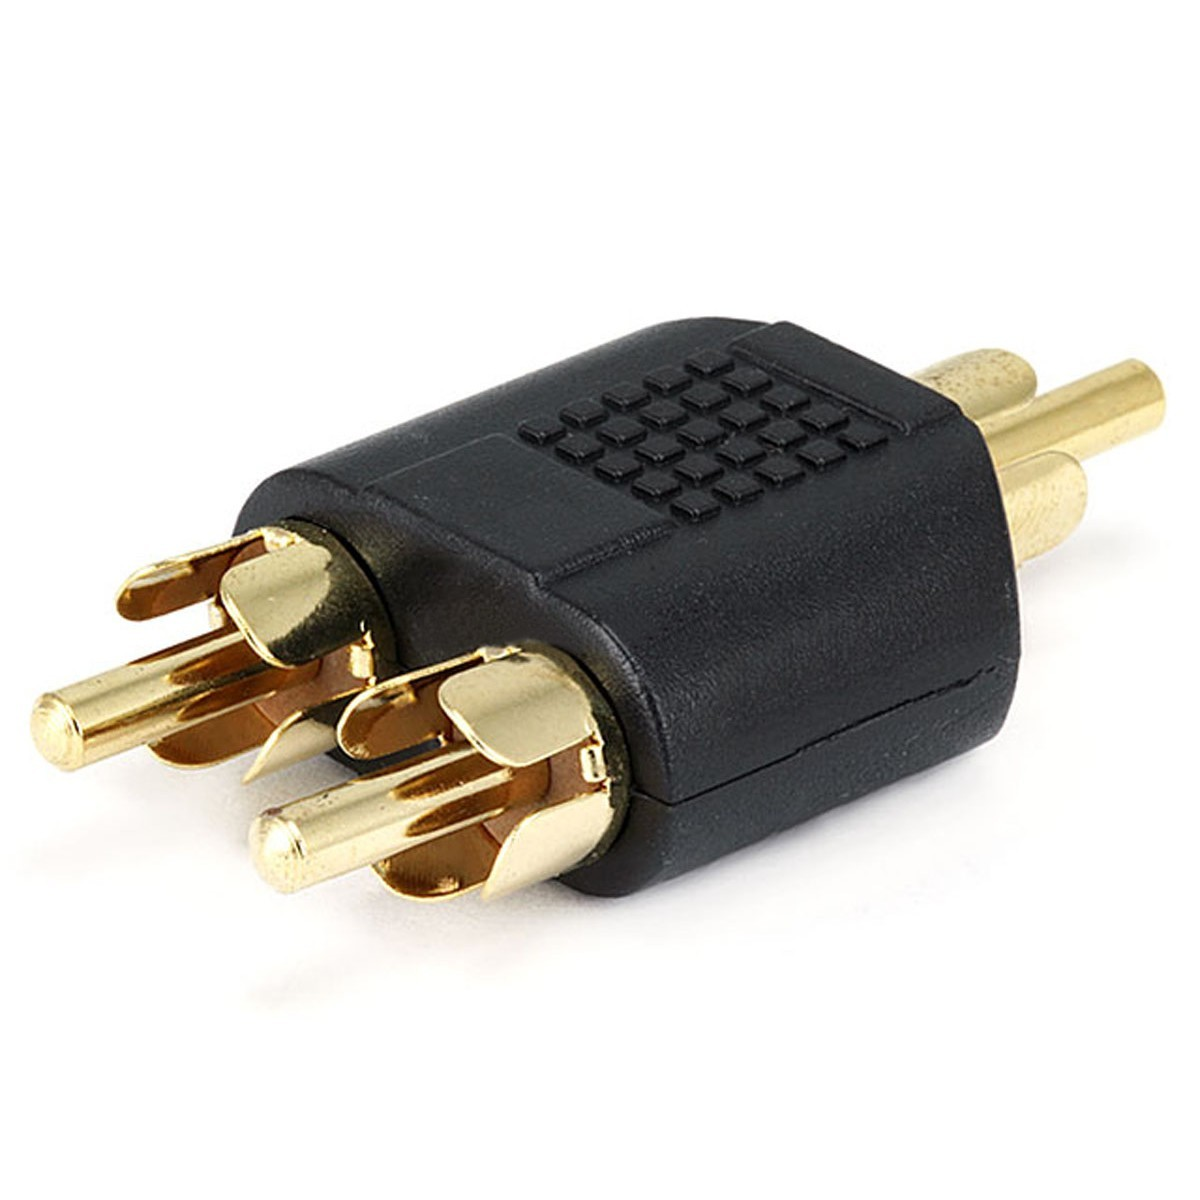 Adaptor splitter Gold plated RCA male to 2x RCA male